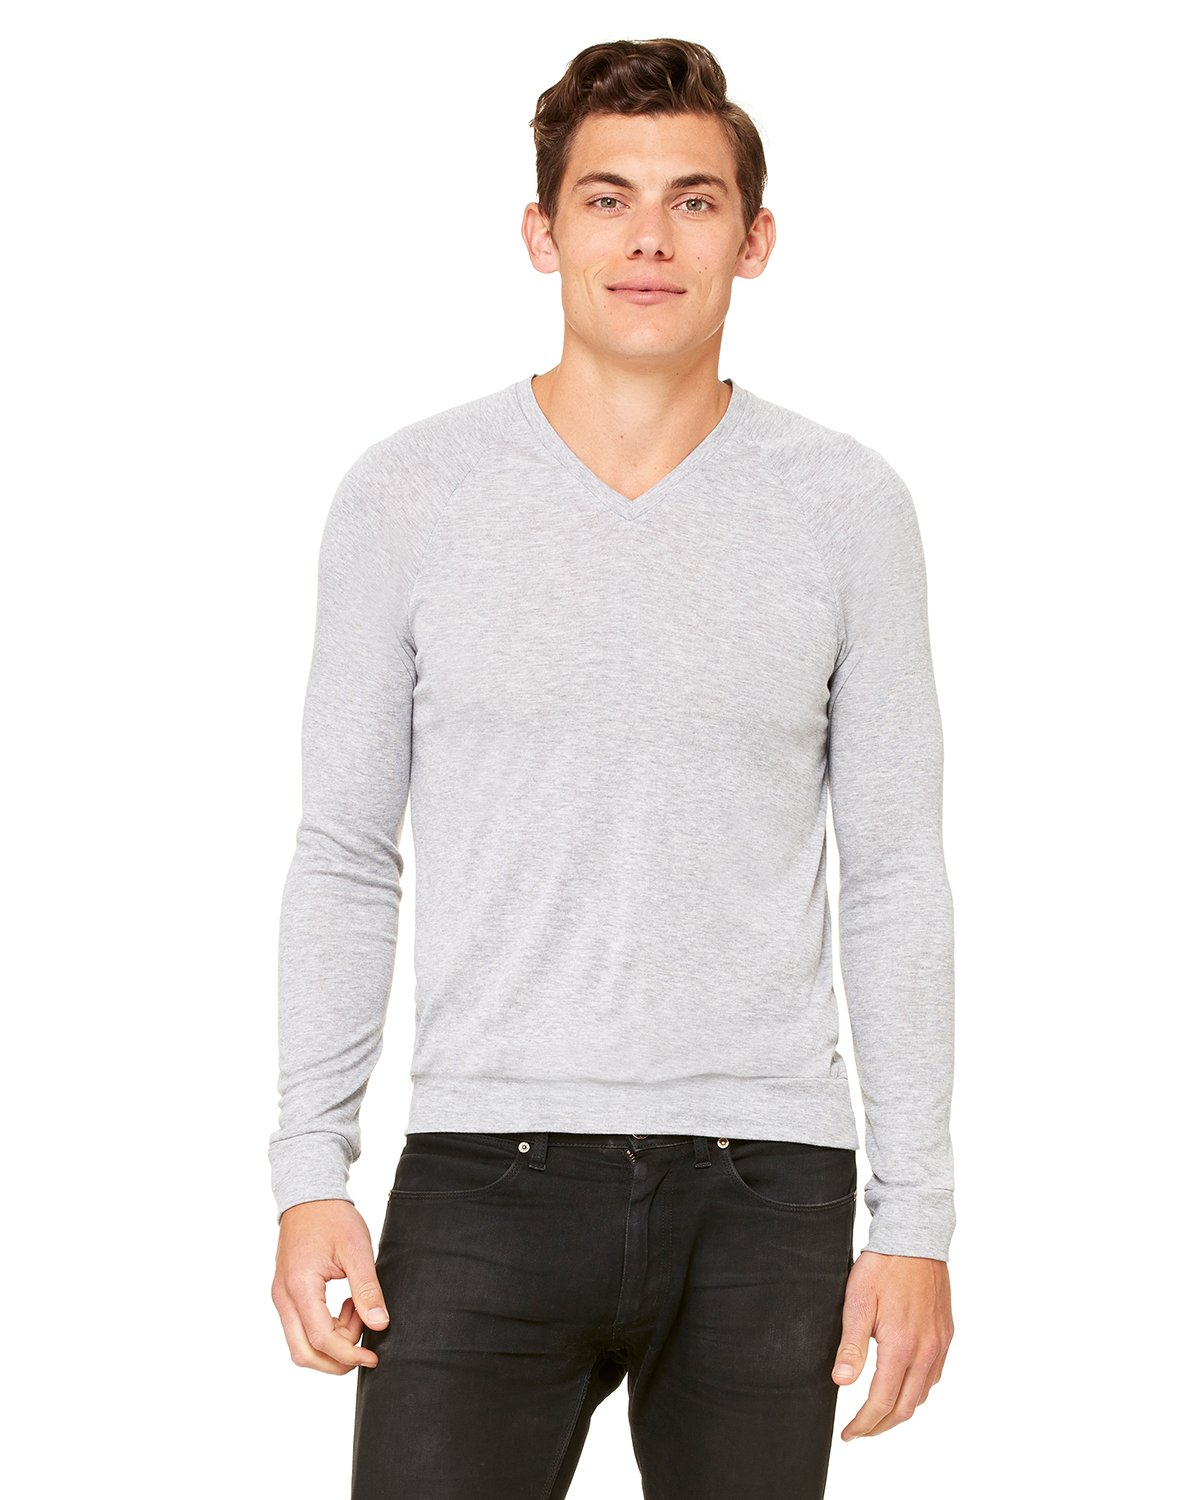 Bella + Canvas - 3985 - Unisex V-Neck Lightweight Sweater